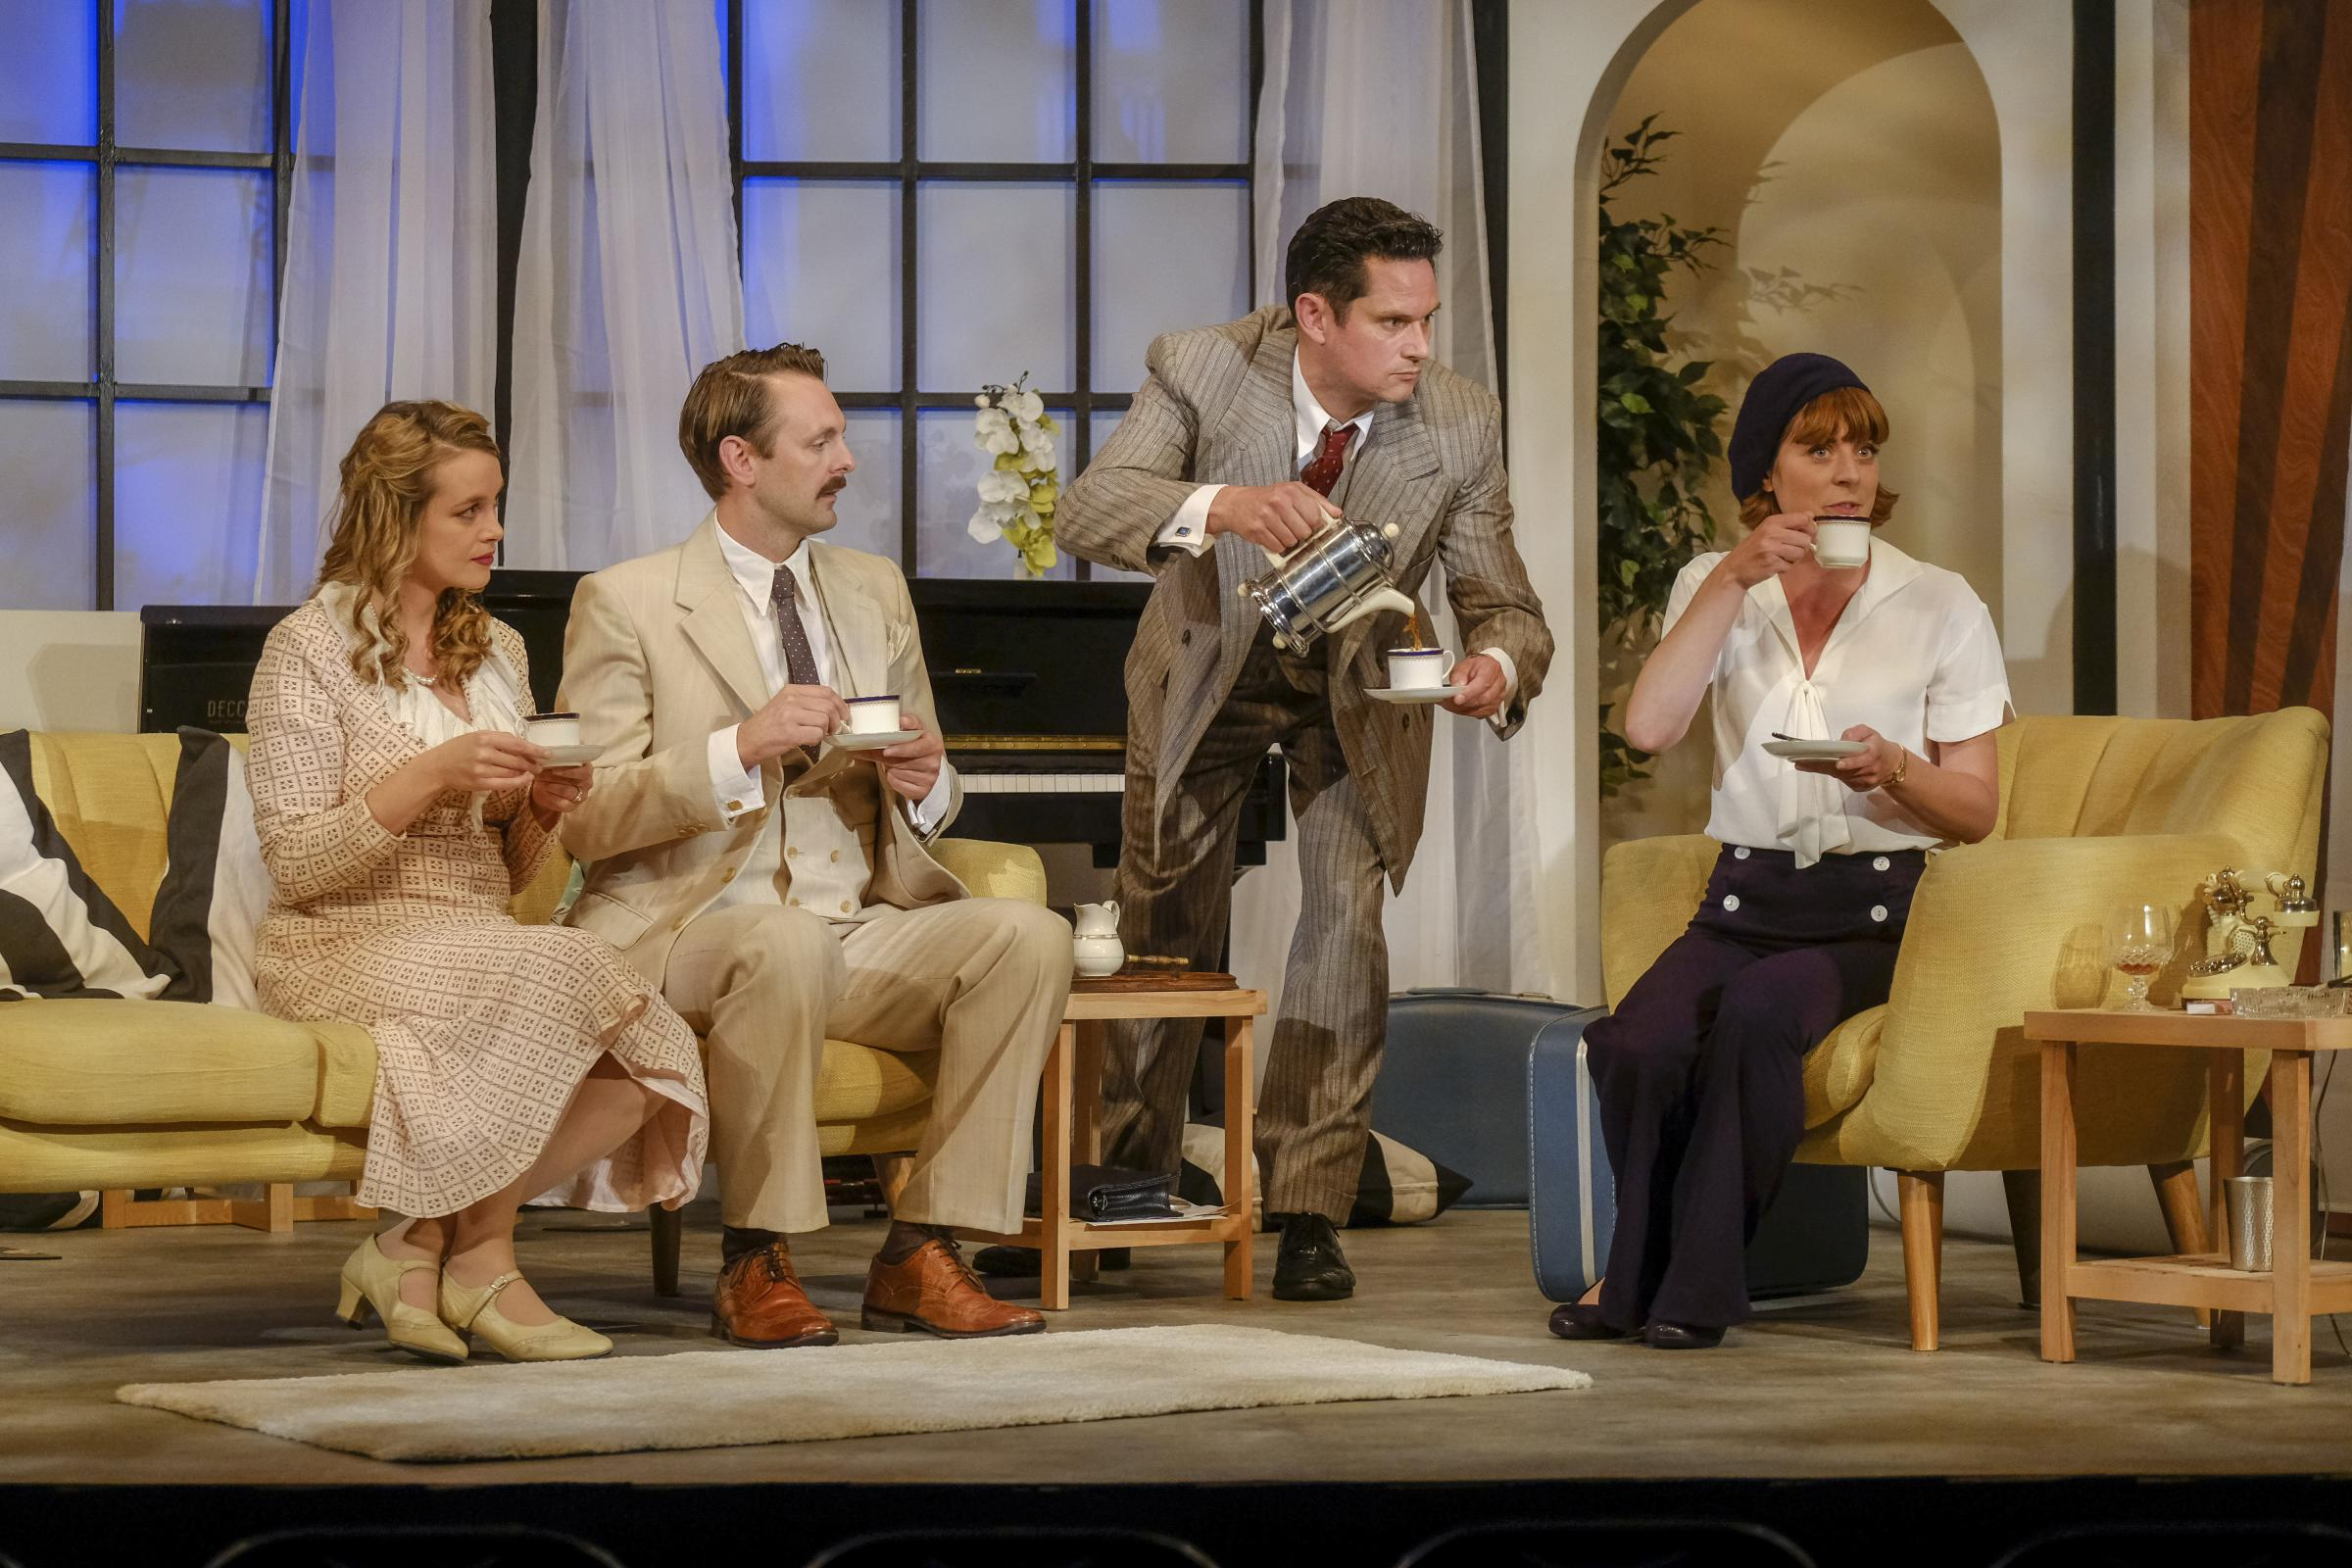 Laura McAlpine, as Sybil, Gary Summers, as Victor, Nicholas Goode, as Elyot, and Rhiannon Sommers, as Amanda, in Esk Valley Theatre's Private Lives. Picture:Tony Bartholomew